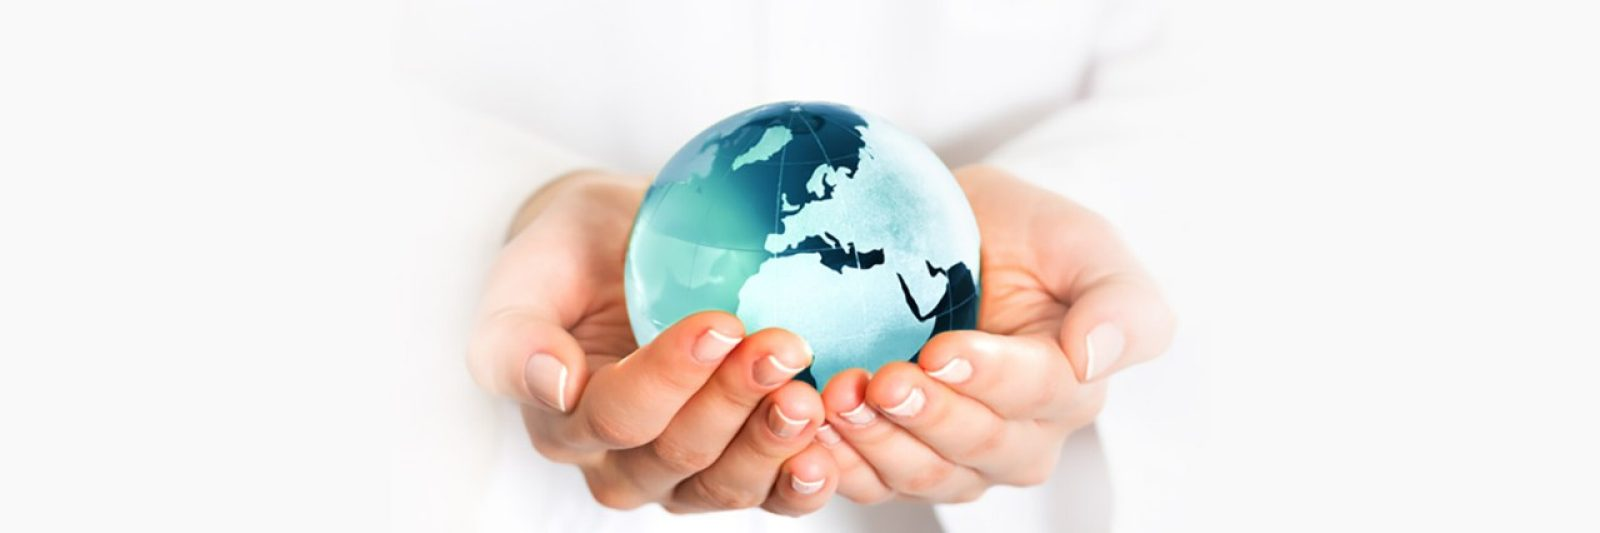 Top and bottom hands touching globe clipart picture royalty free stock Full Material Disclosure | Jabil picture royalty free stock